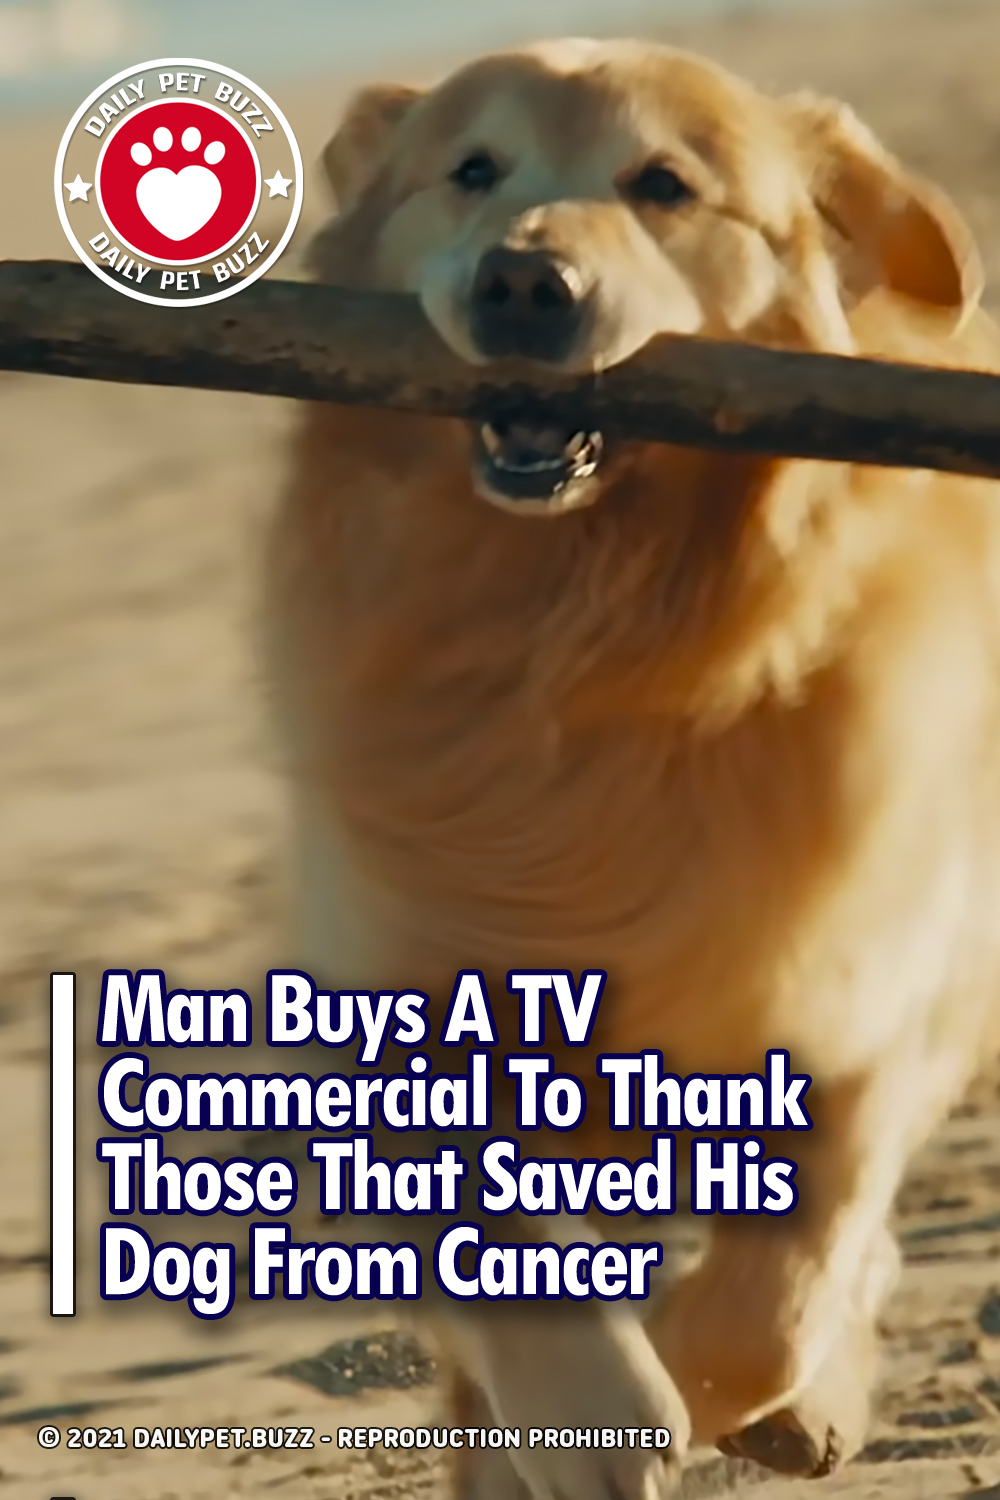 Man Buys A TV Commercial To Thank Those That Saved His Dog From Cancer